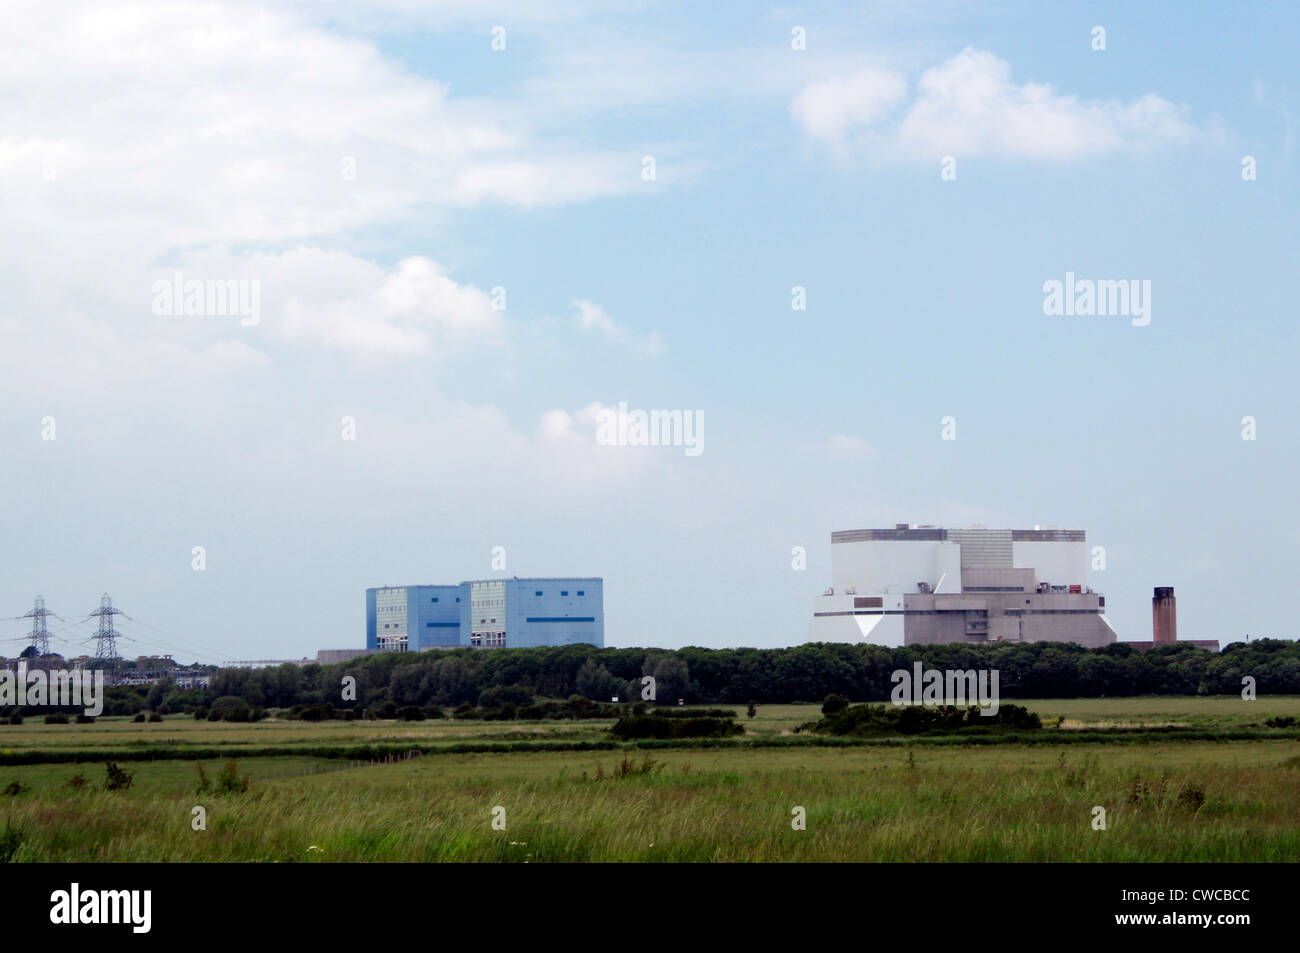 Hinkley Point nuclear power station, Somerset, England - Stock Image